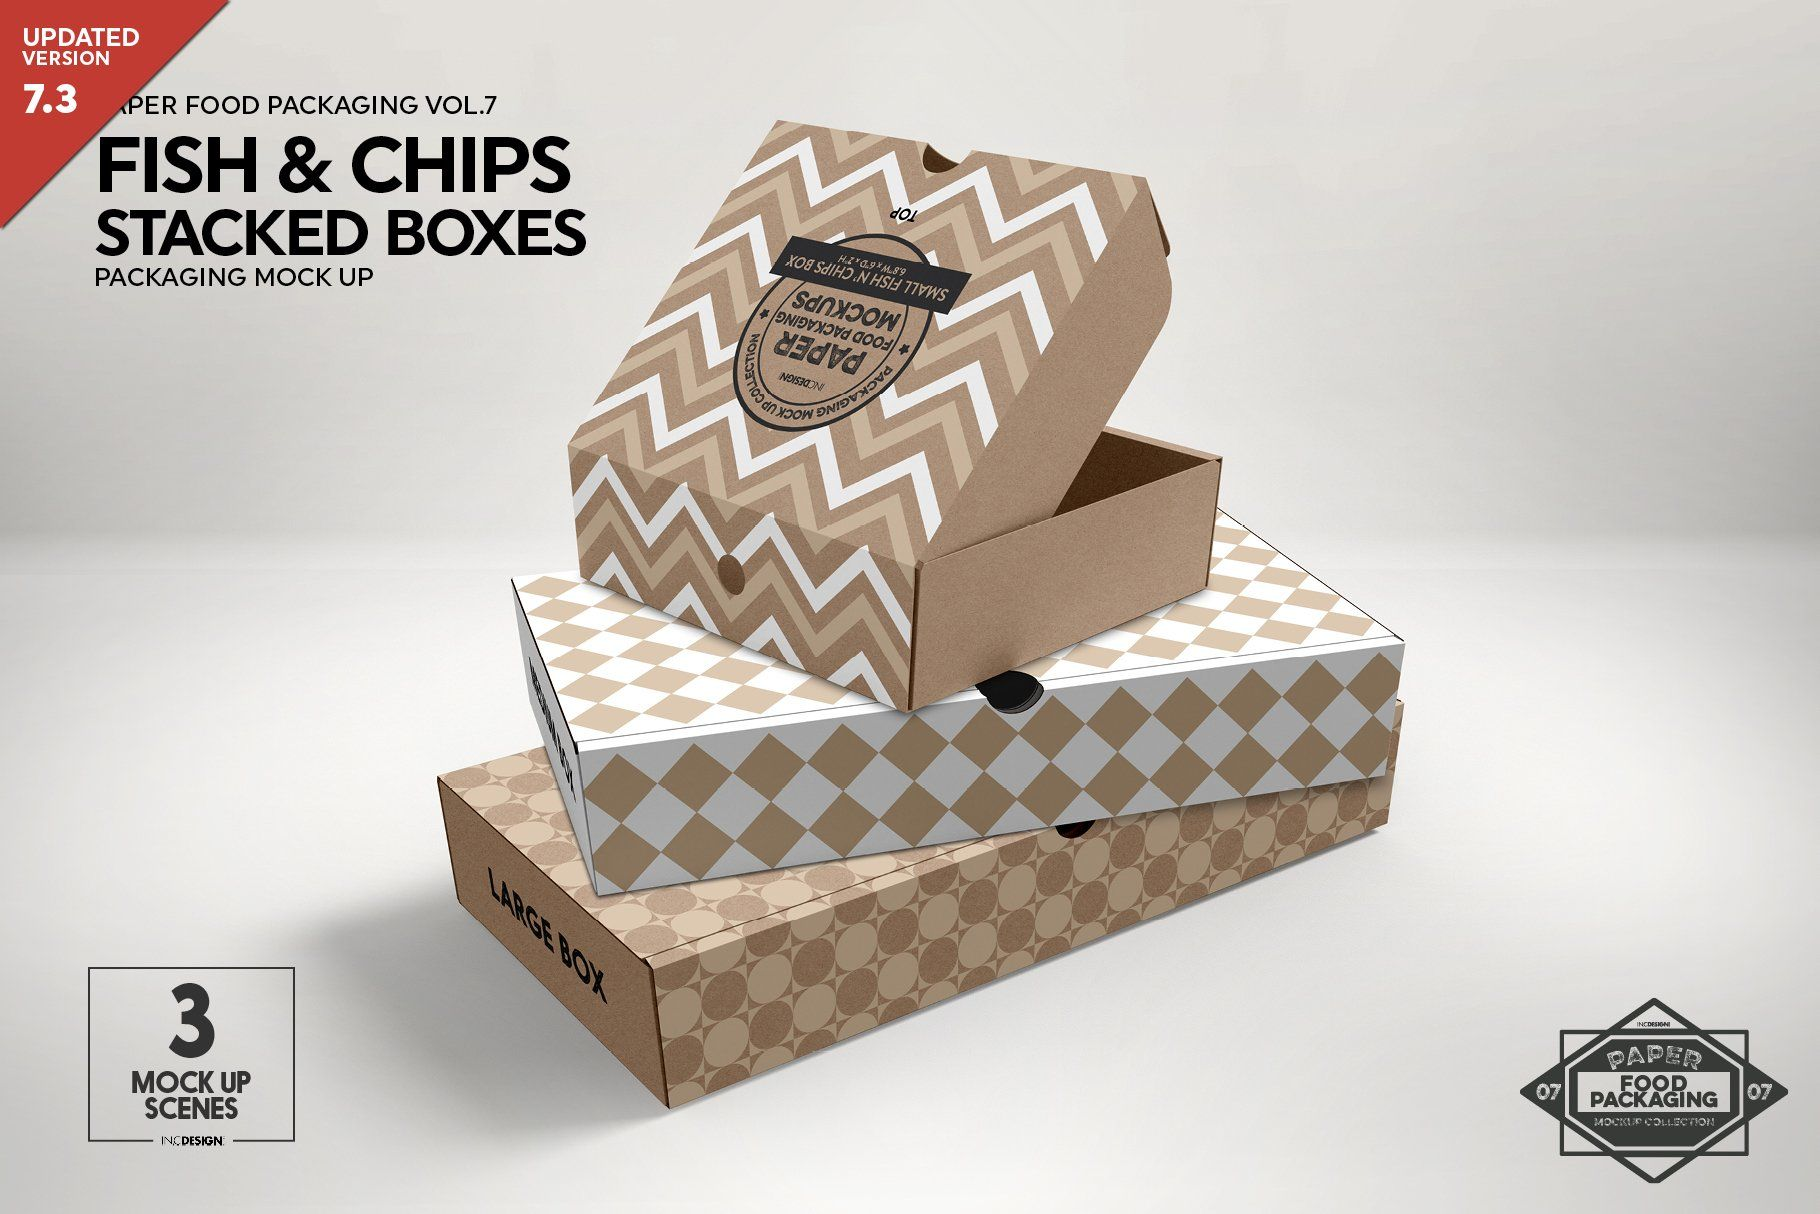 Download Stacked Fast Food Boxes Mockup Packaging Mockup Food Box Packaging Box Mockup